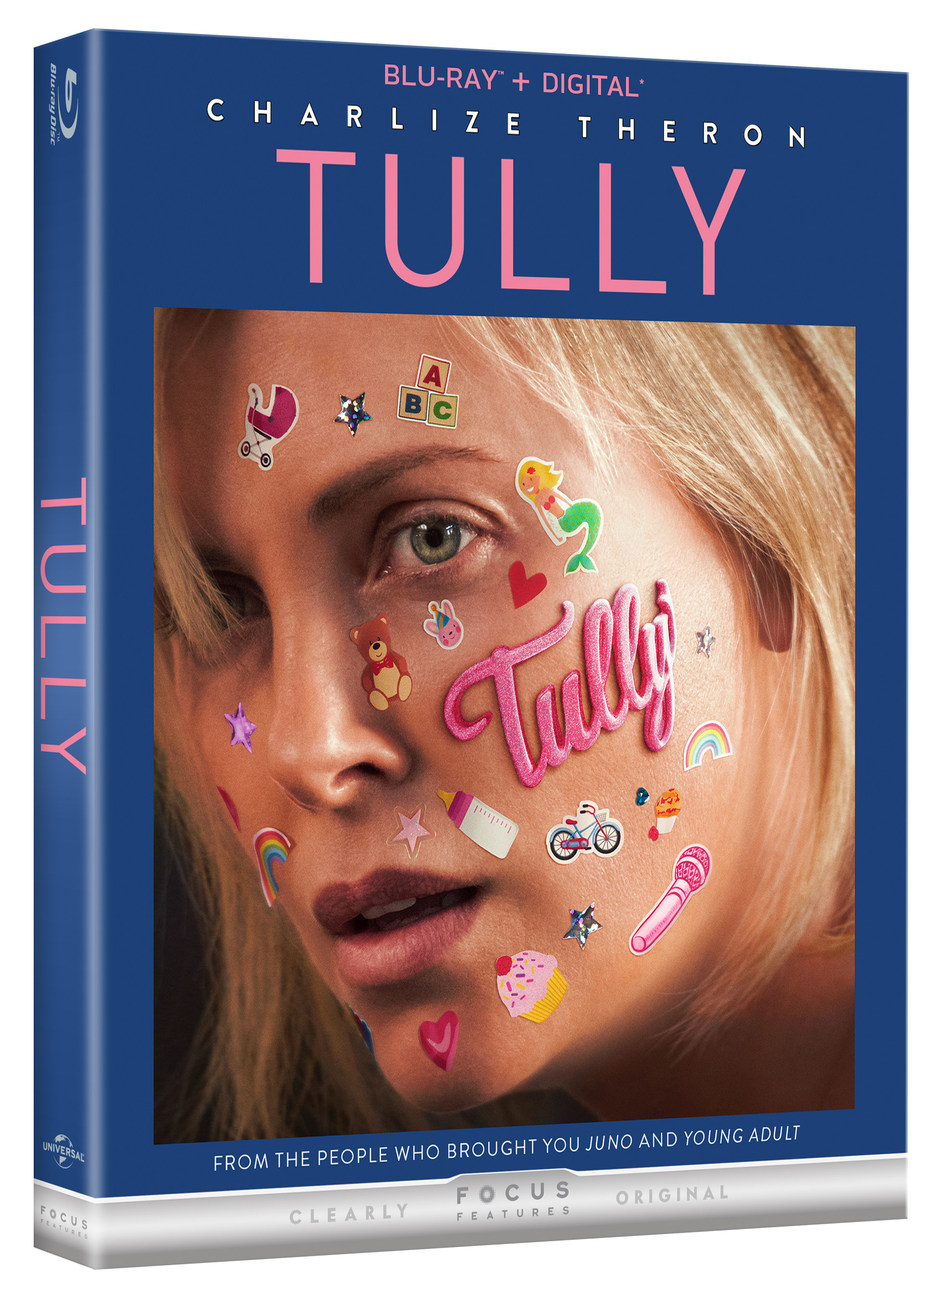 From Universal Pictures Home Entertainment: Tully